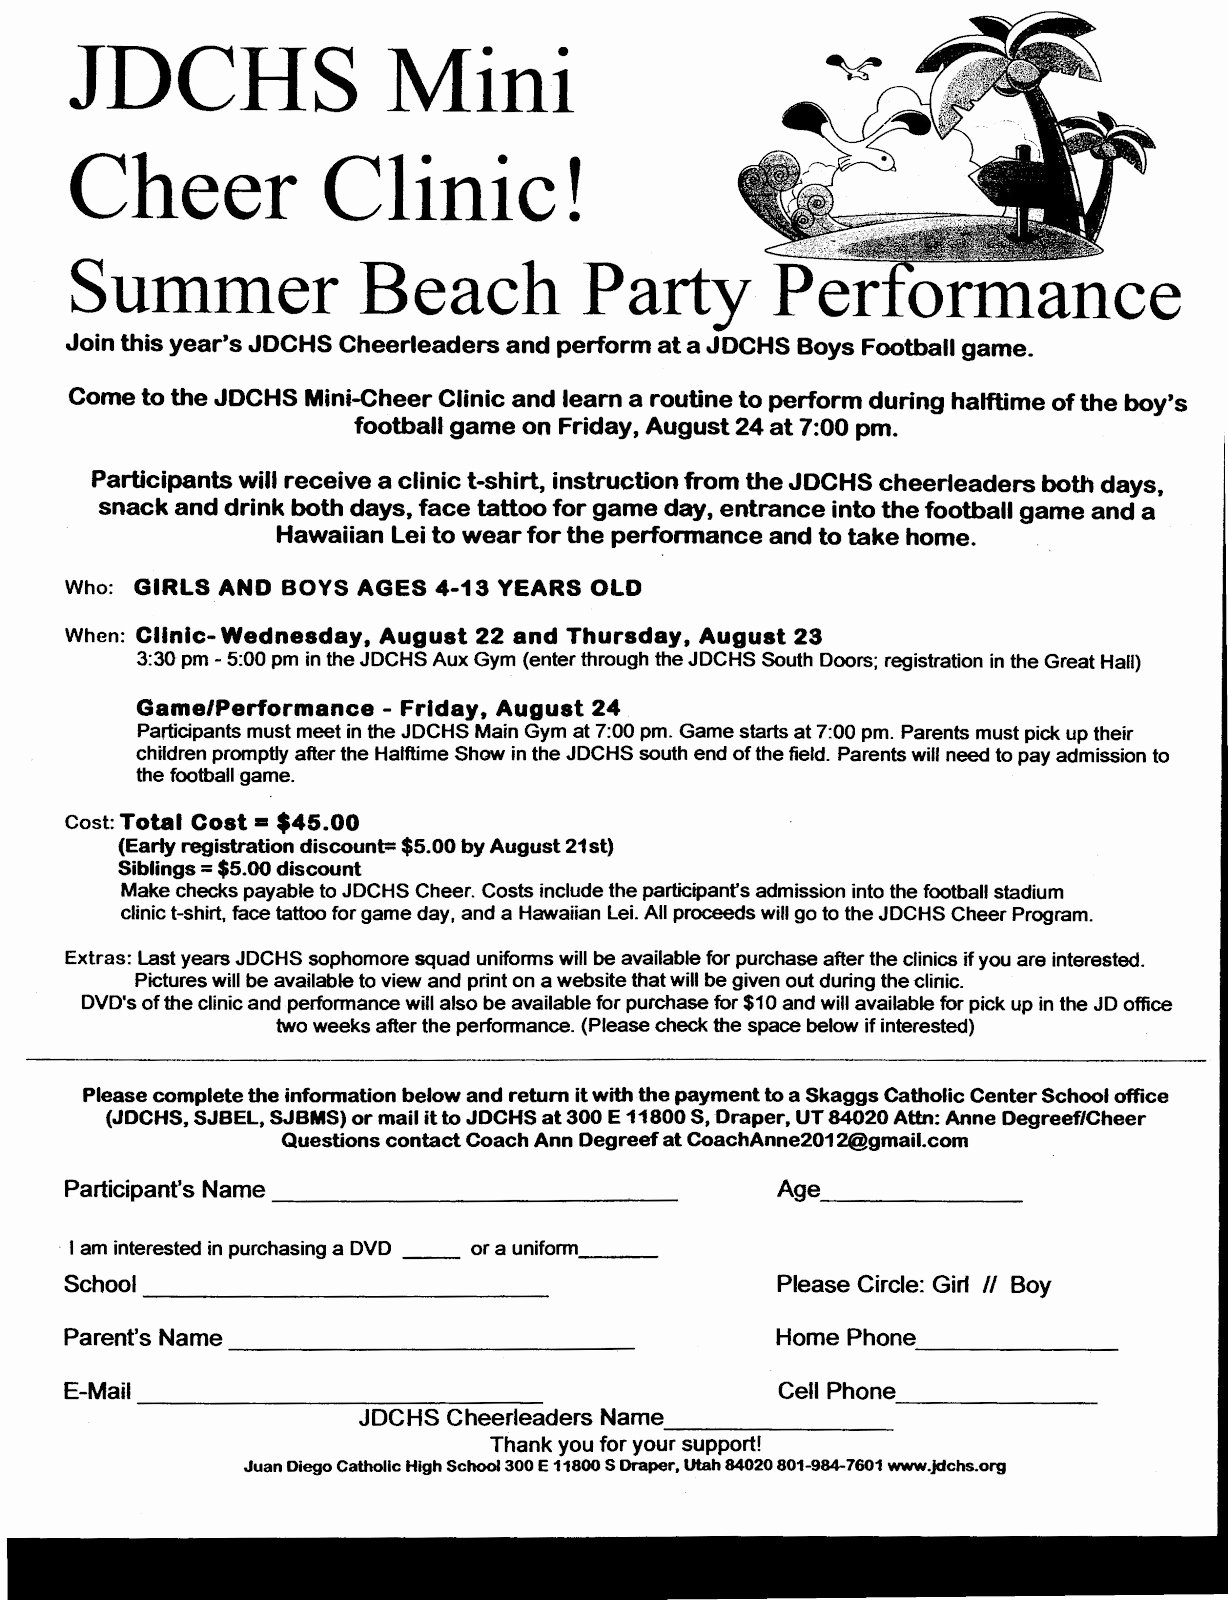 Cheerleading Registration form Template Best Of Jd Cheer Mini Cheer Clinic Flyer